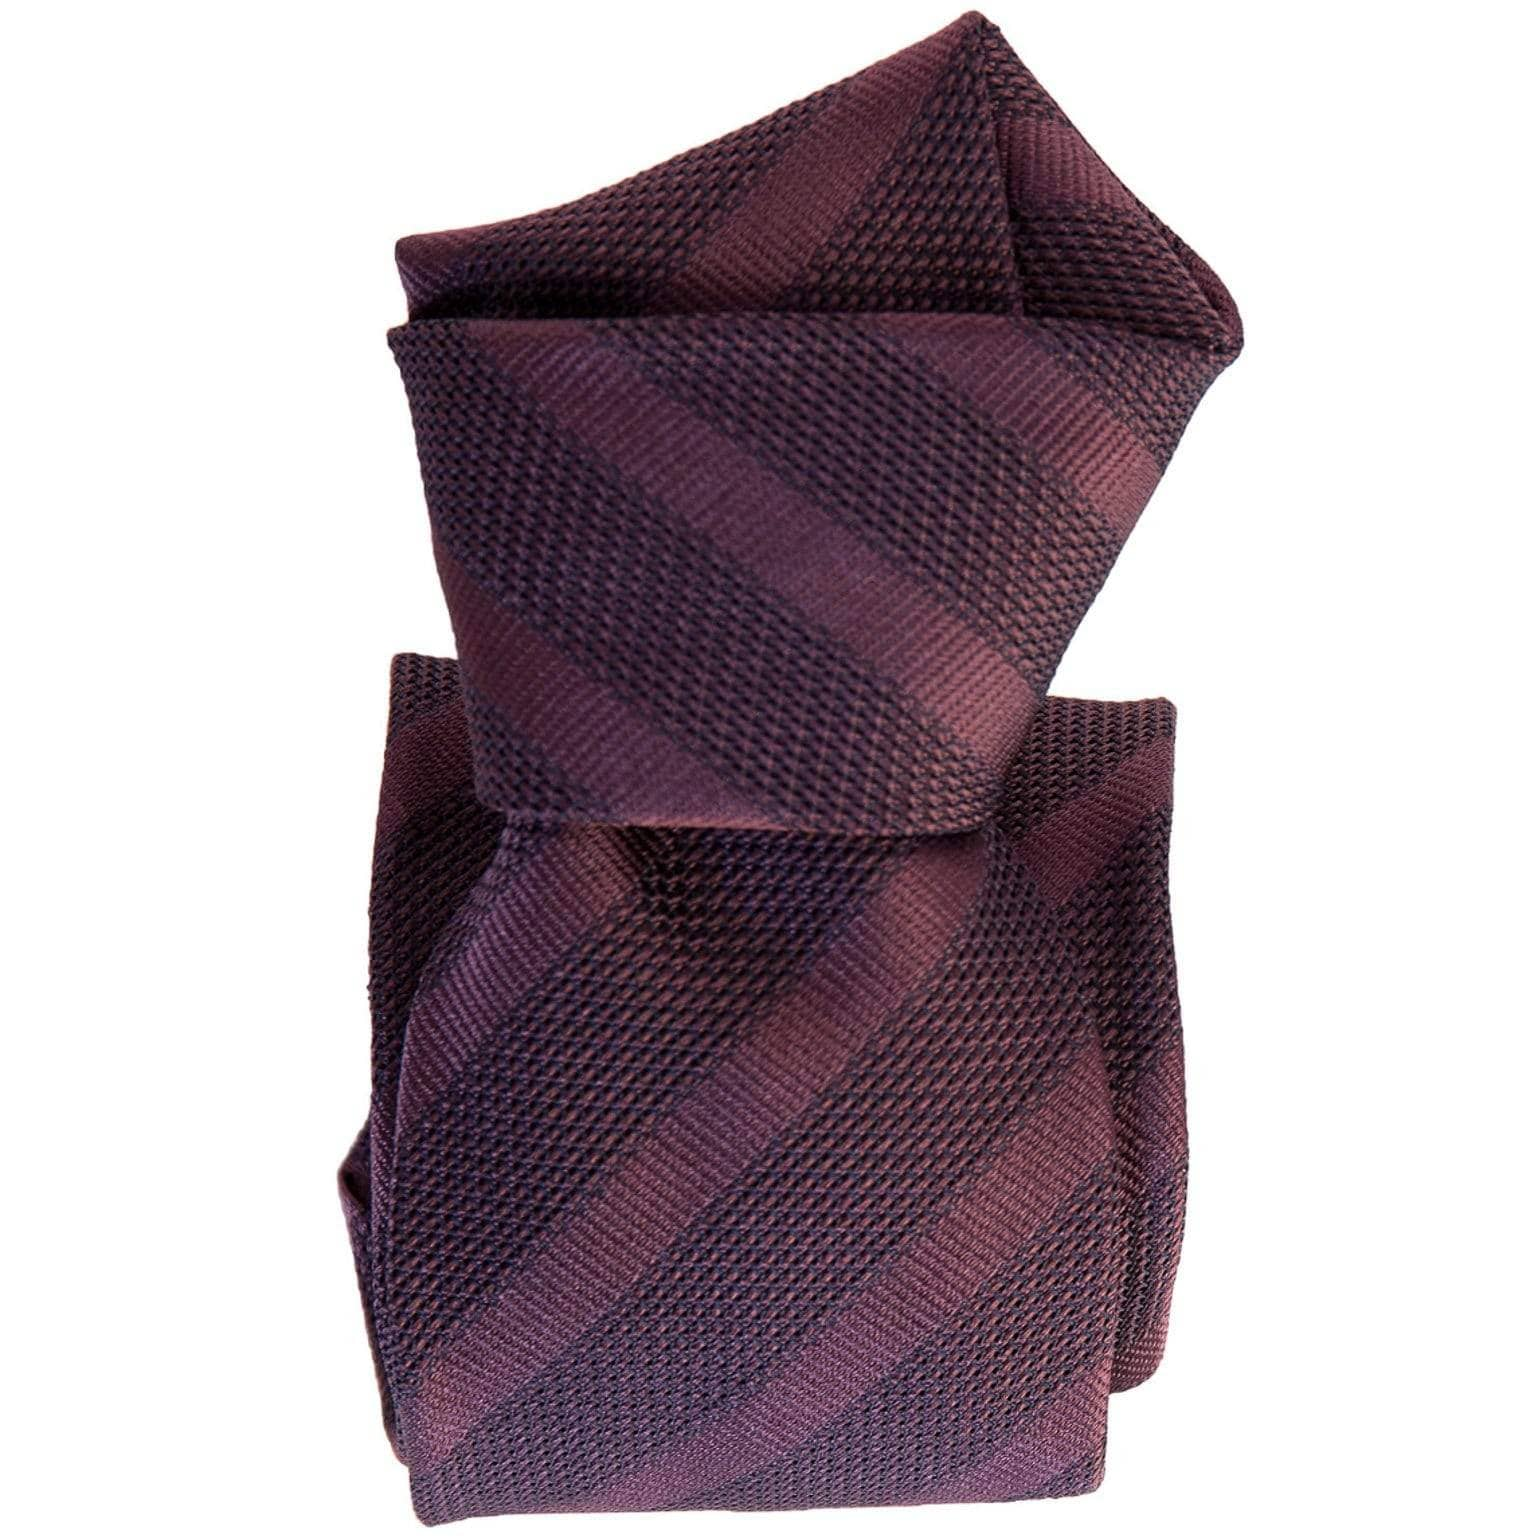 Italian Burgundy Grenadine Silk Tie - Woven Striped